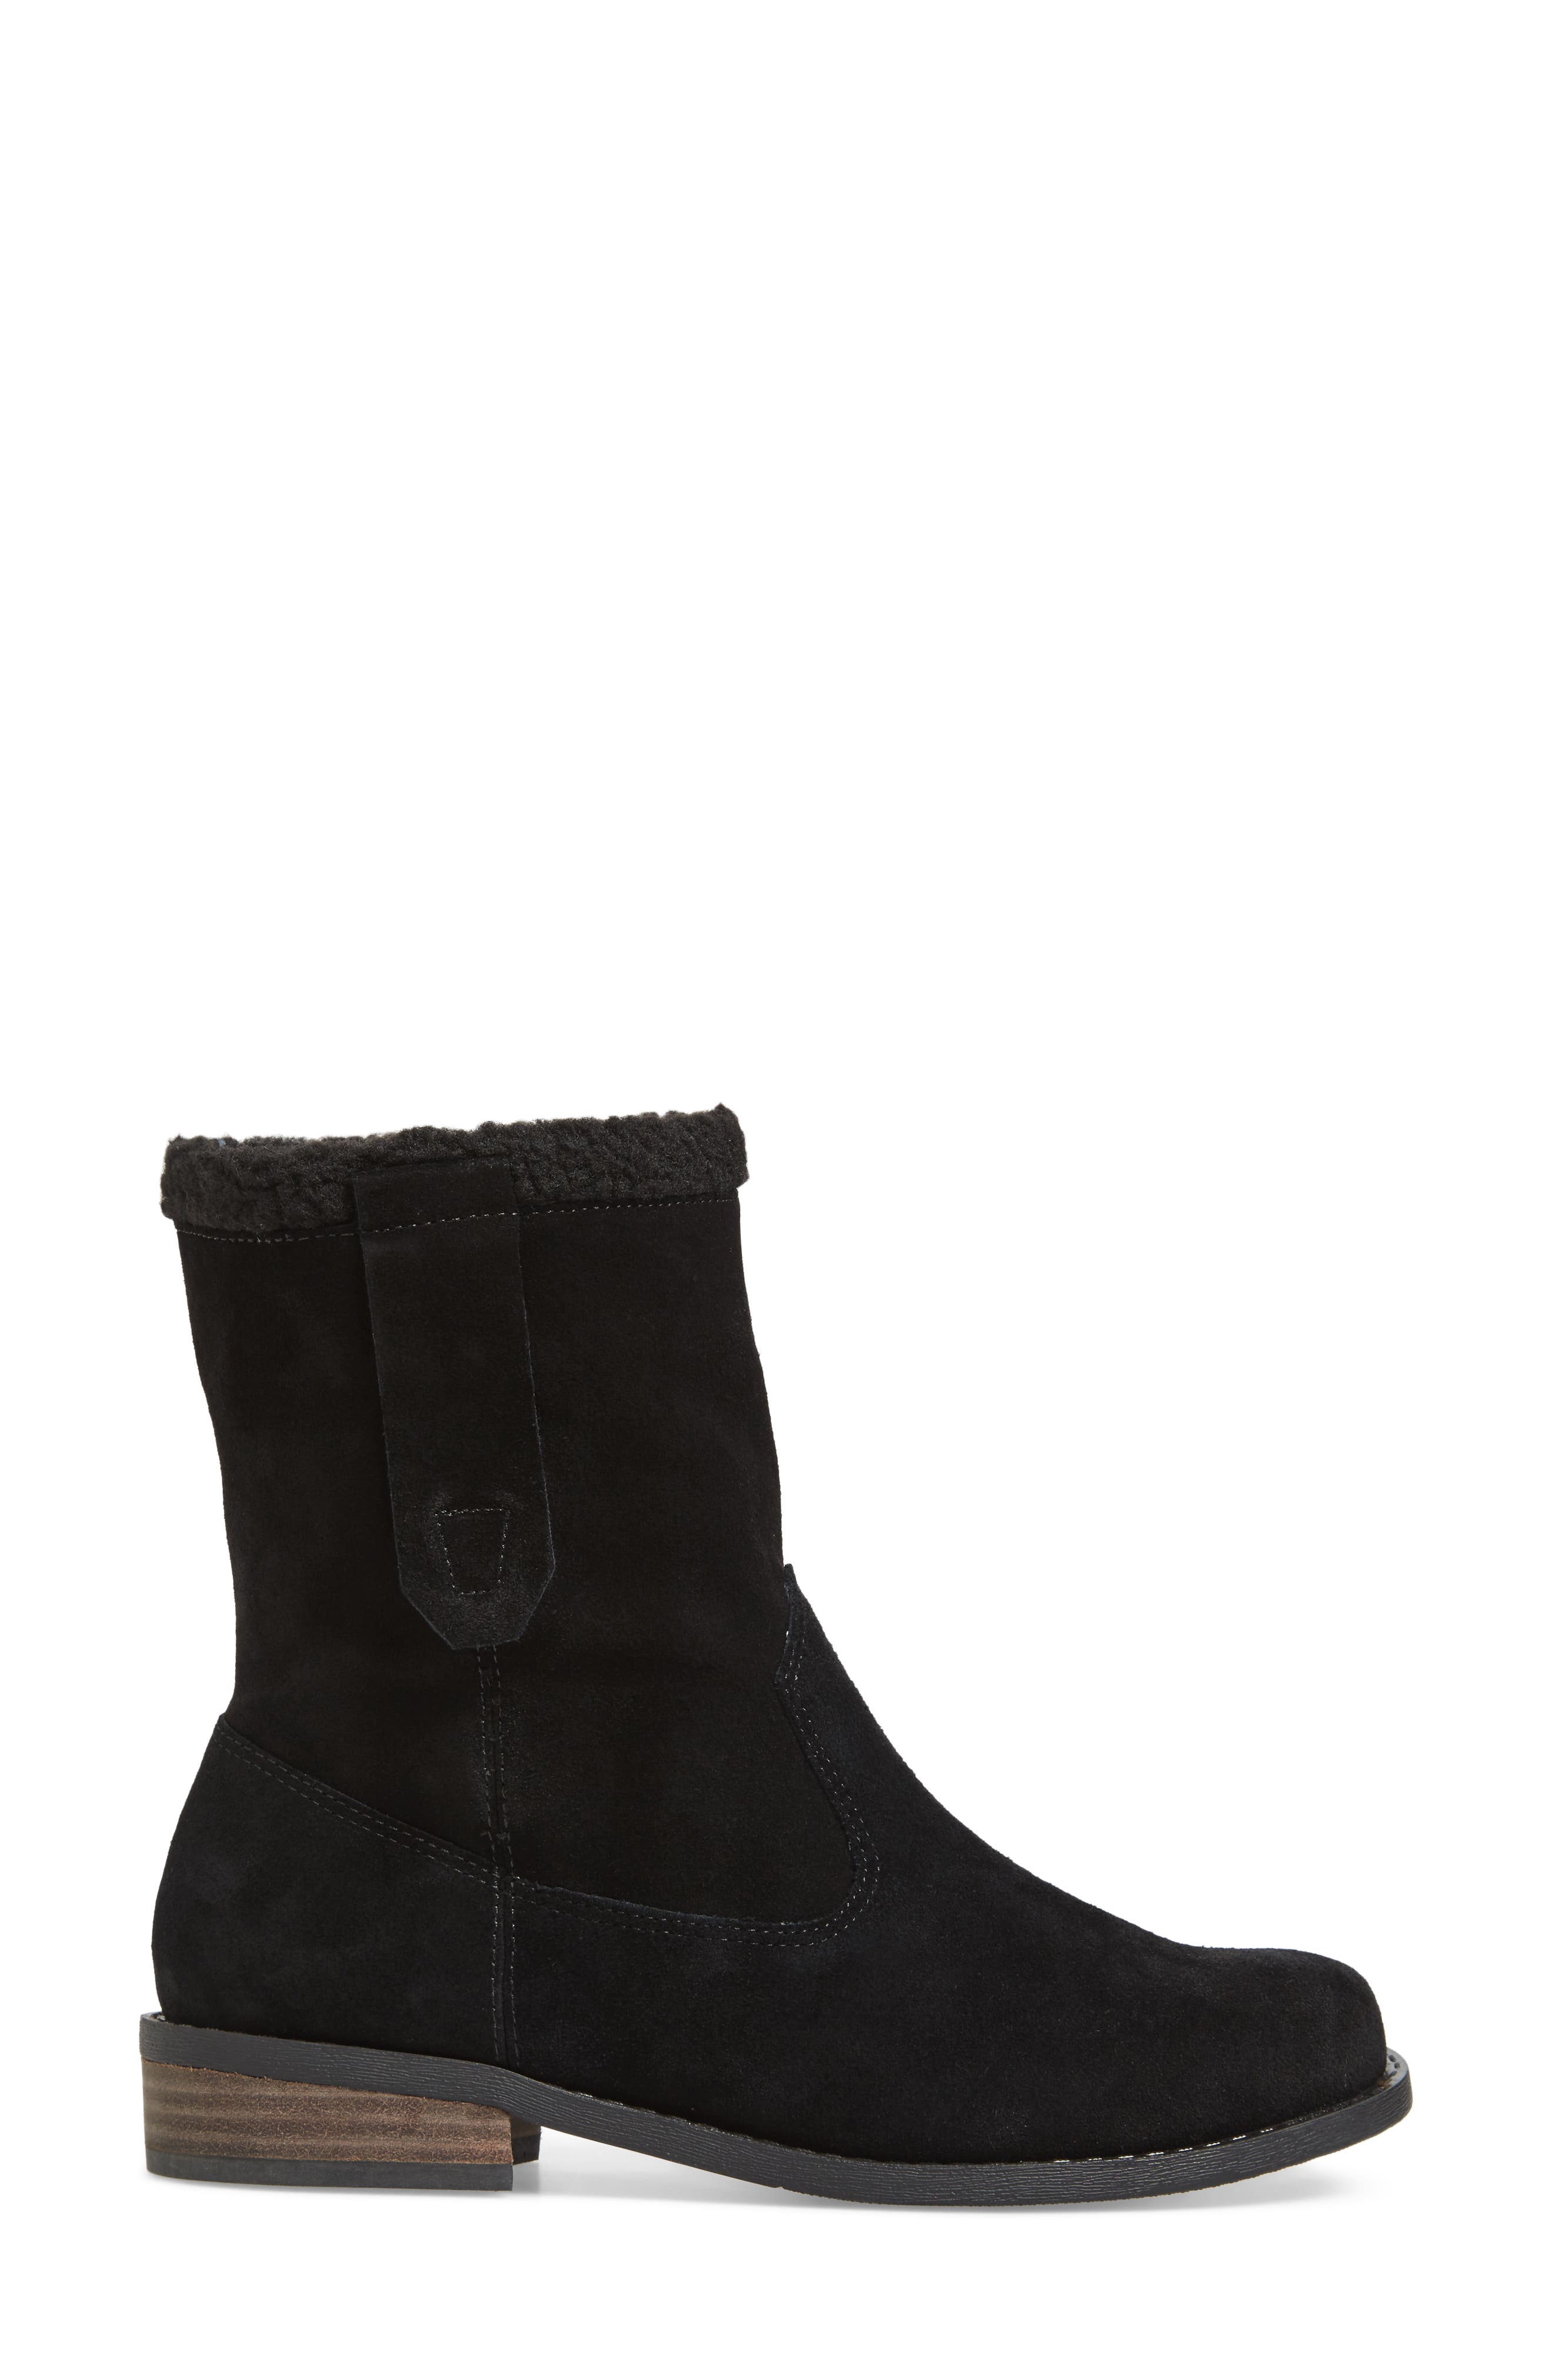 Verona Faux Shearling Boot,                             Alternate thumbnail 3, color,                             BLACK/ BLACK SUEDE